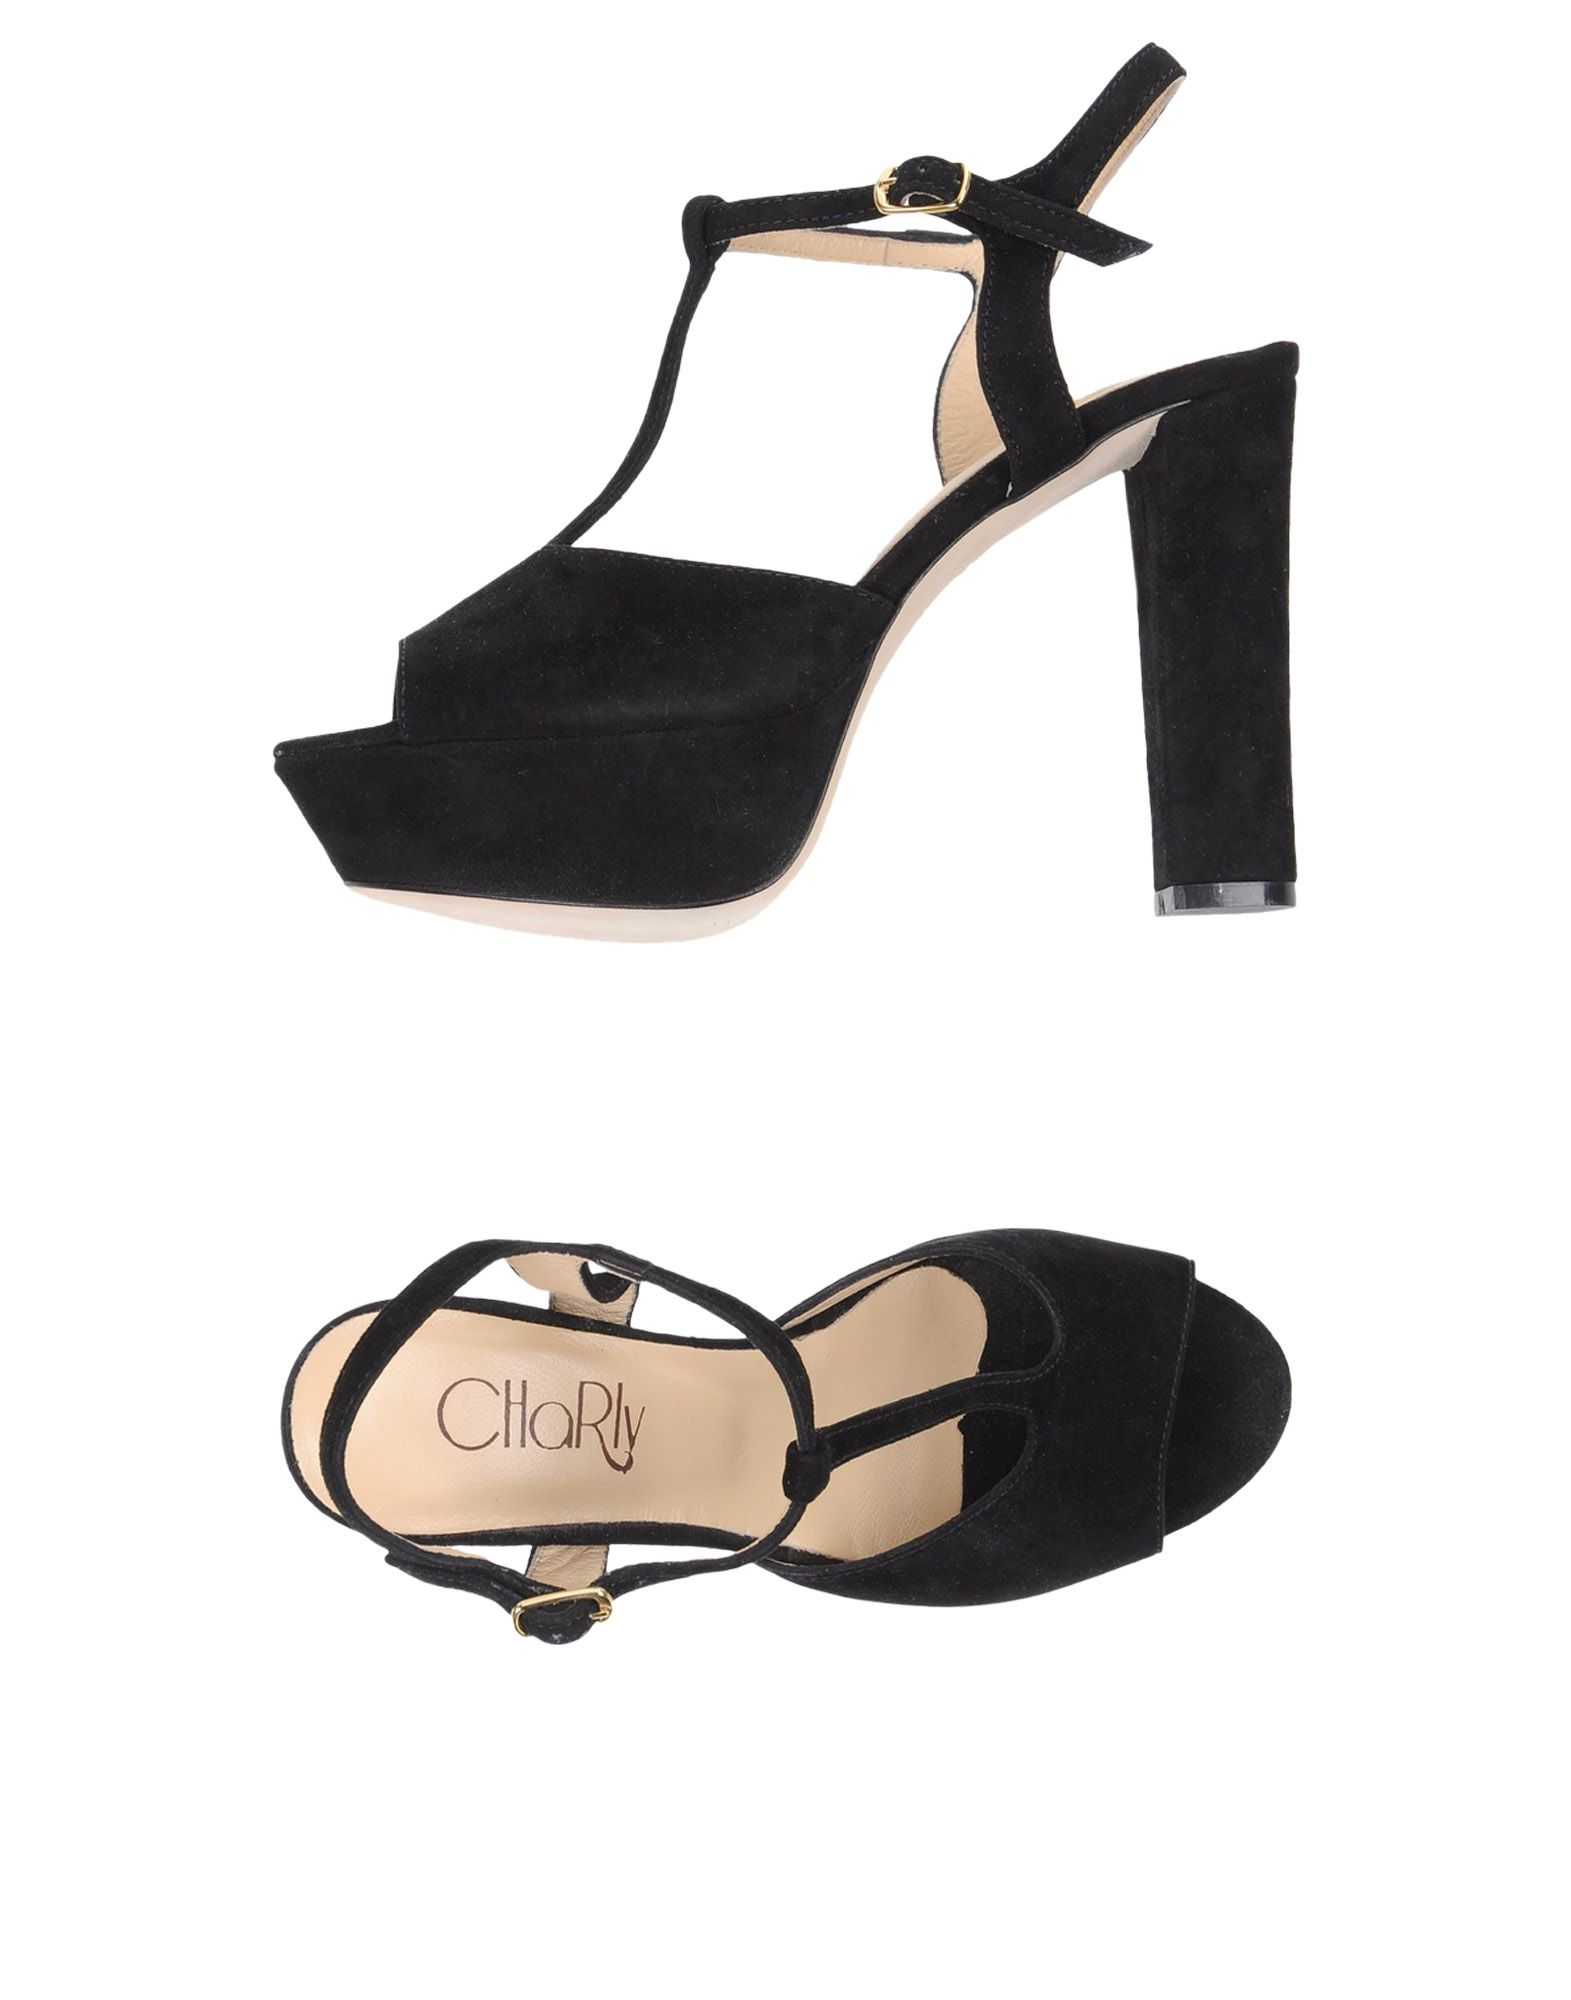 Sandales Charly Femme - Sandales Charly sur